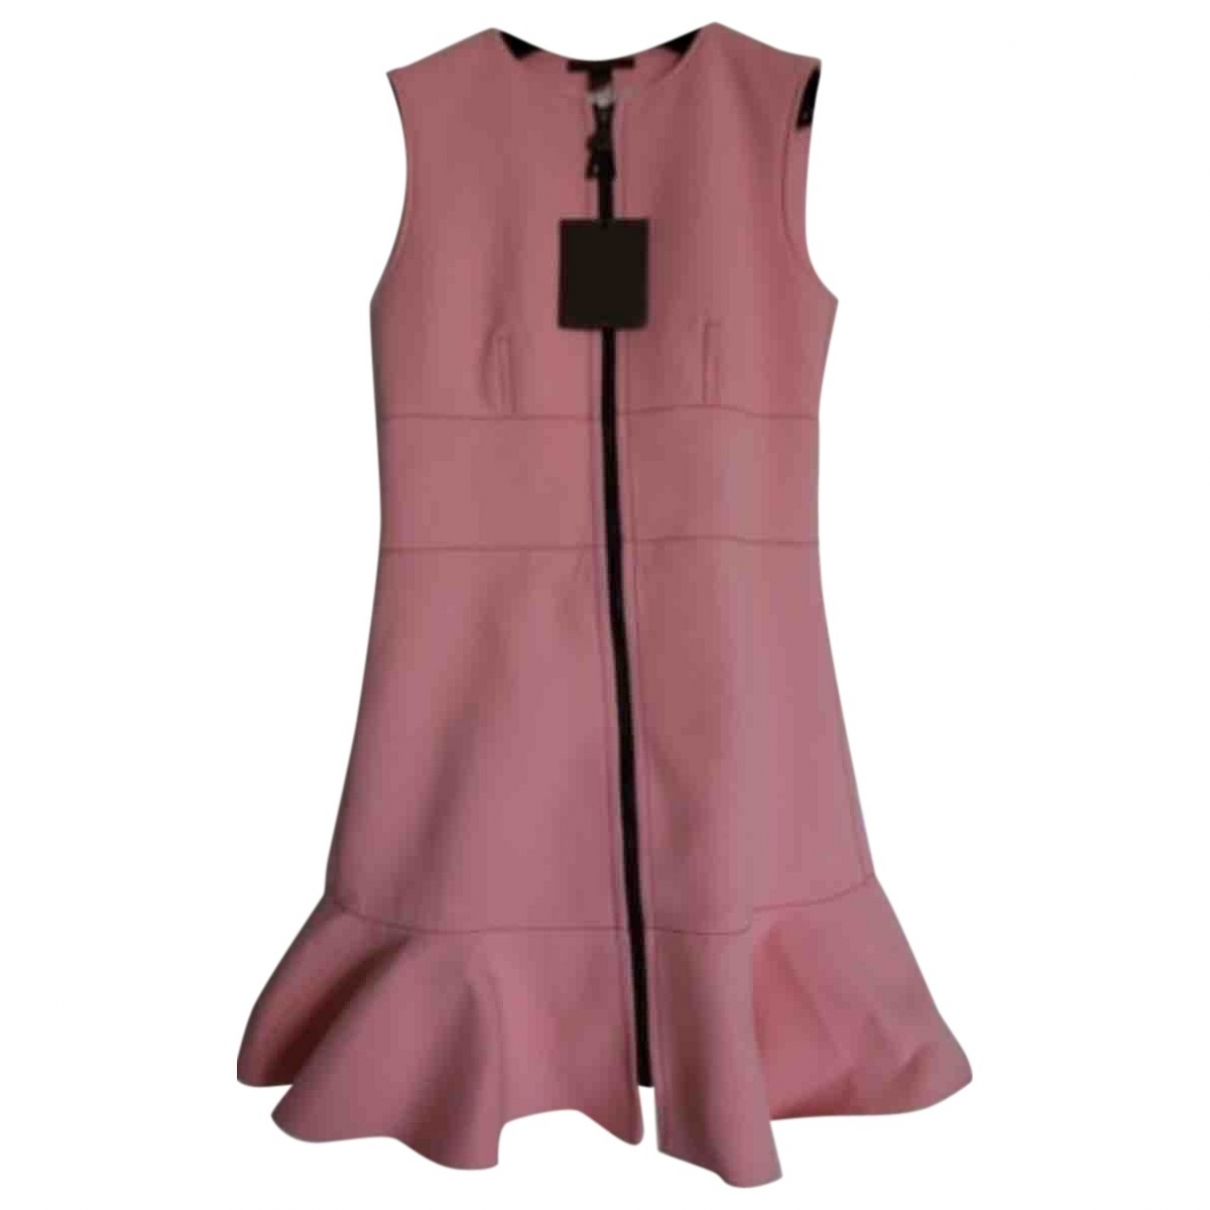 Louis Vuitton \N Pink dress for Women 36 FR